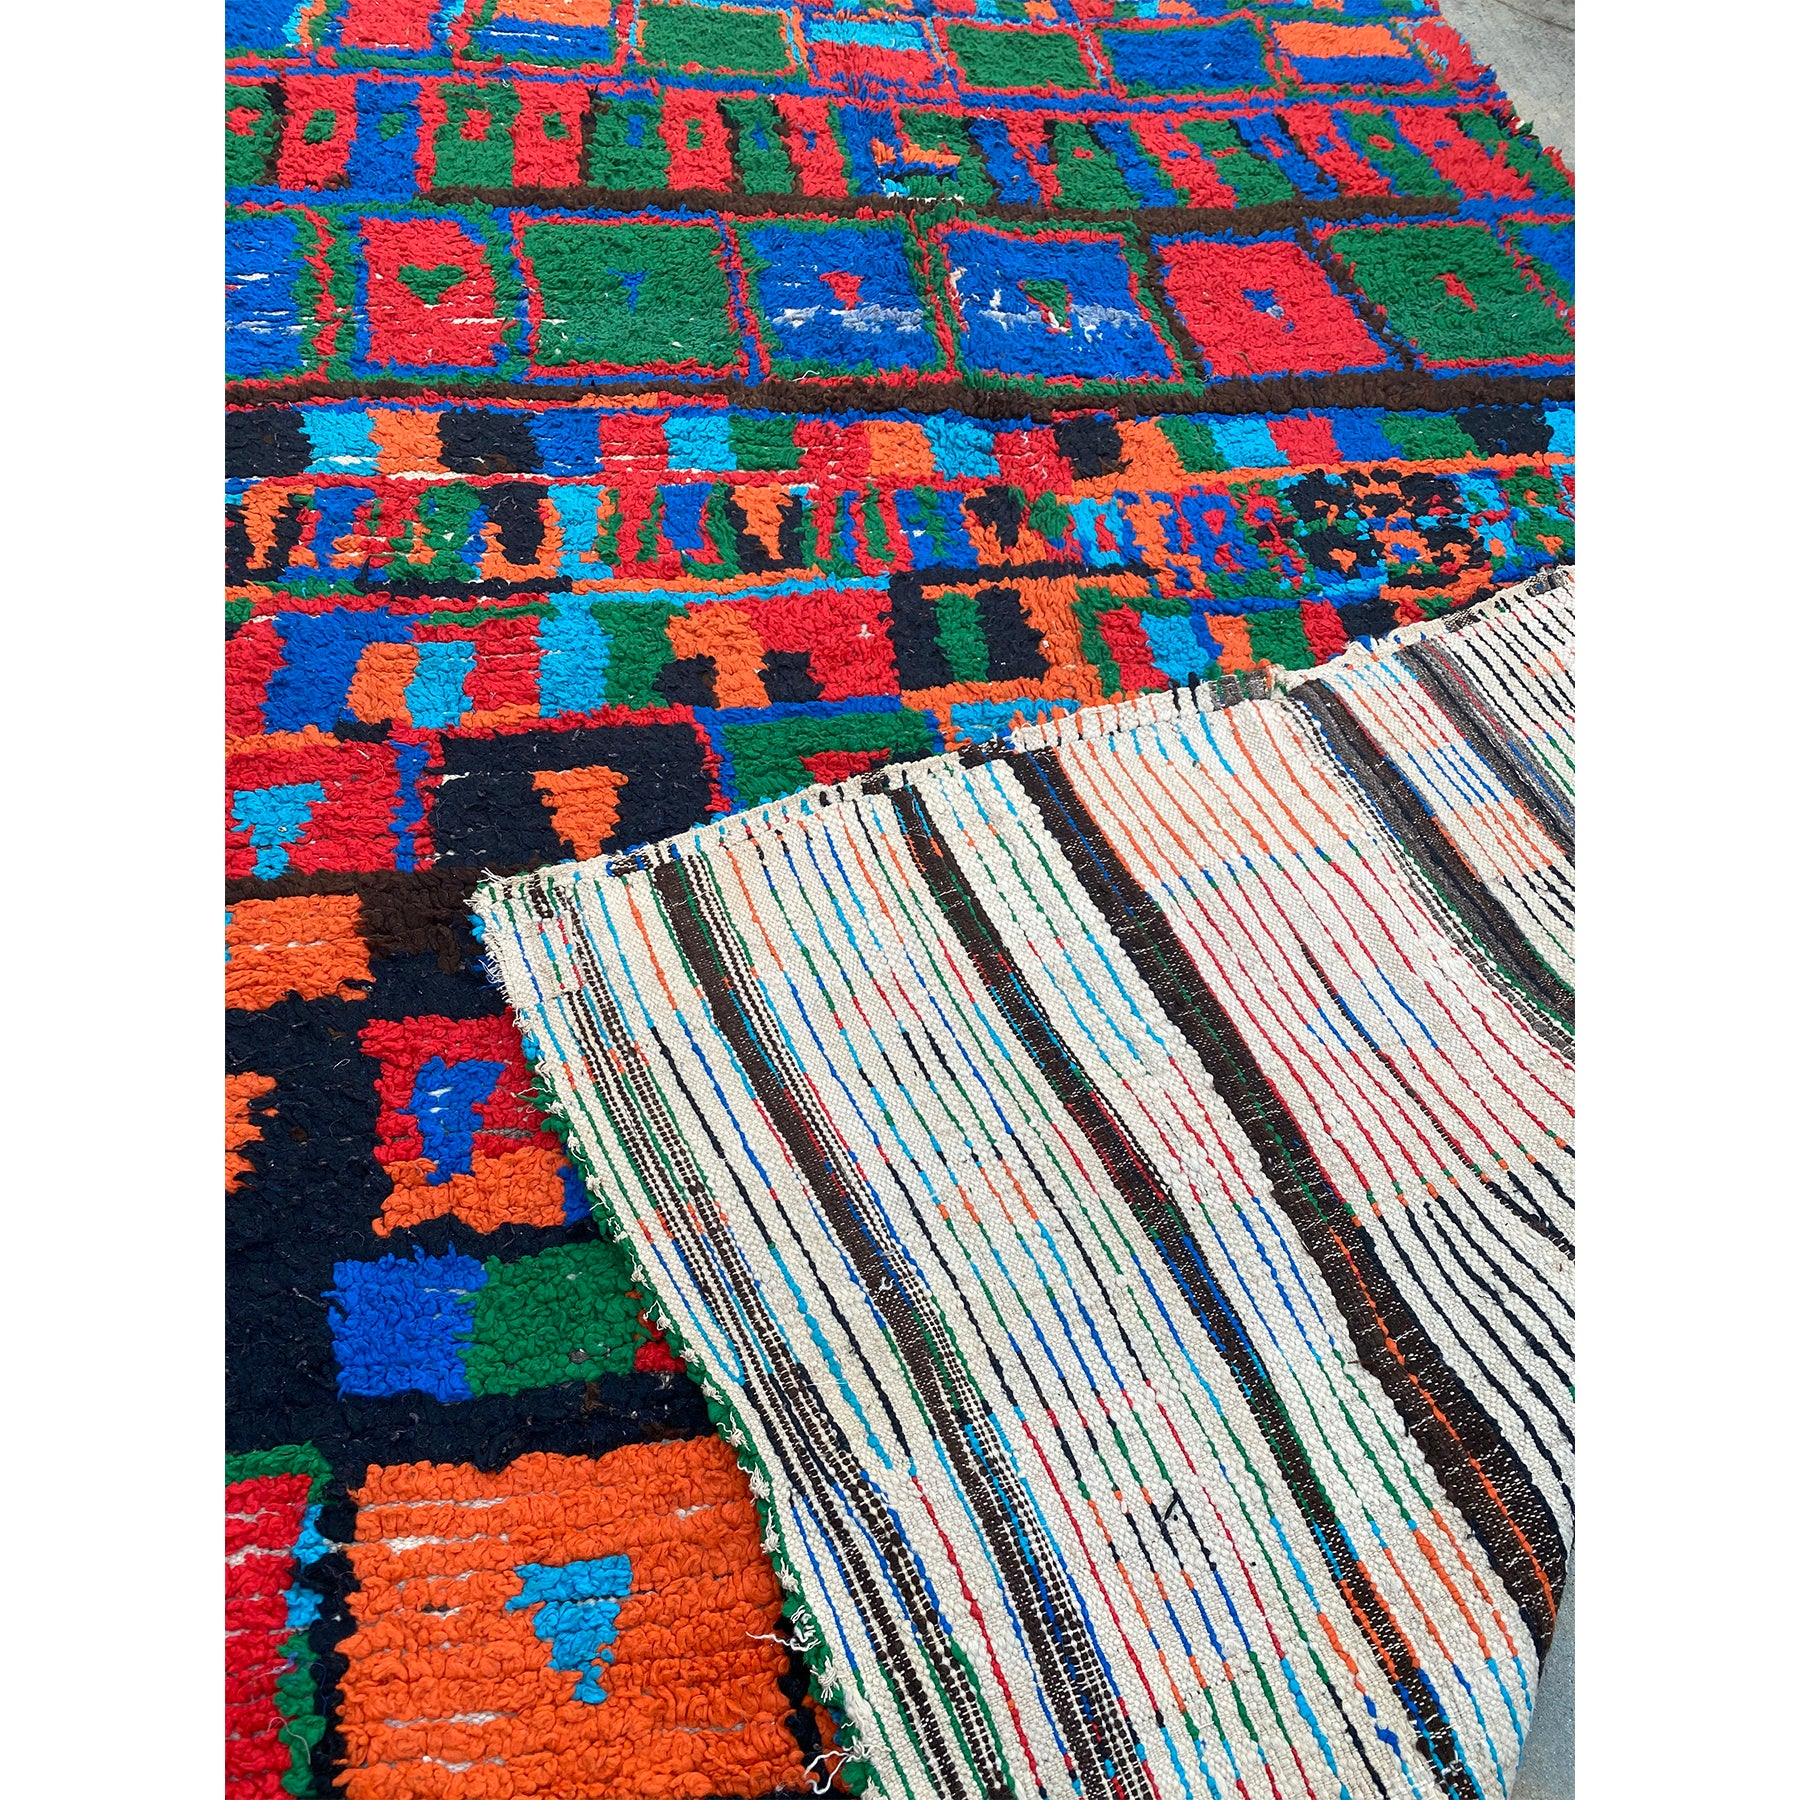 One of a kind vintage color block Moroccan berber carpet - Kantara | Moroccan Rugs